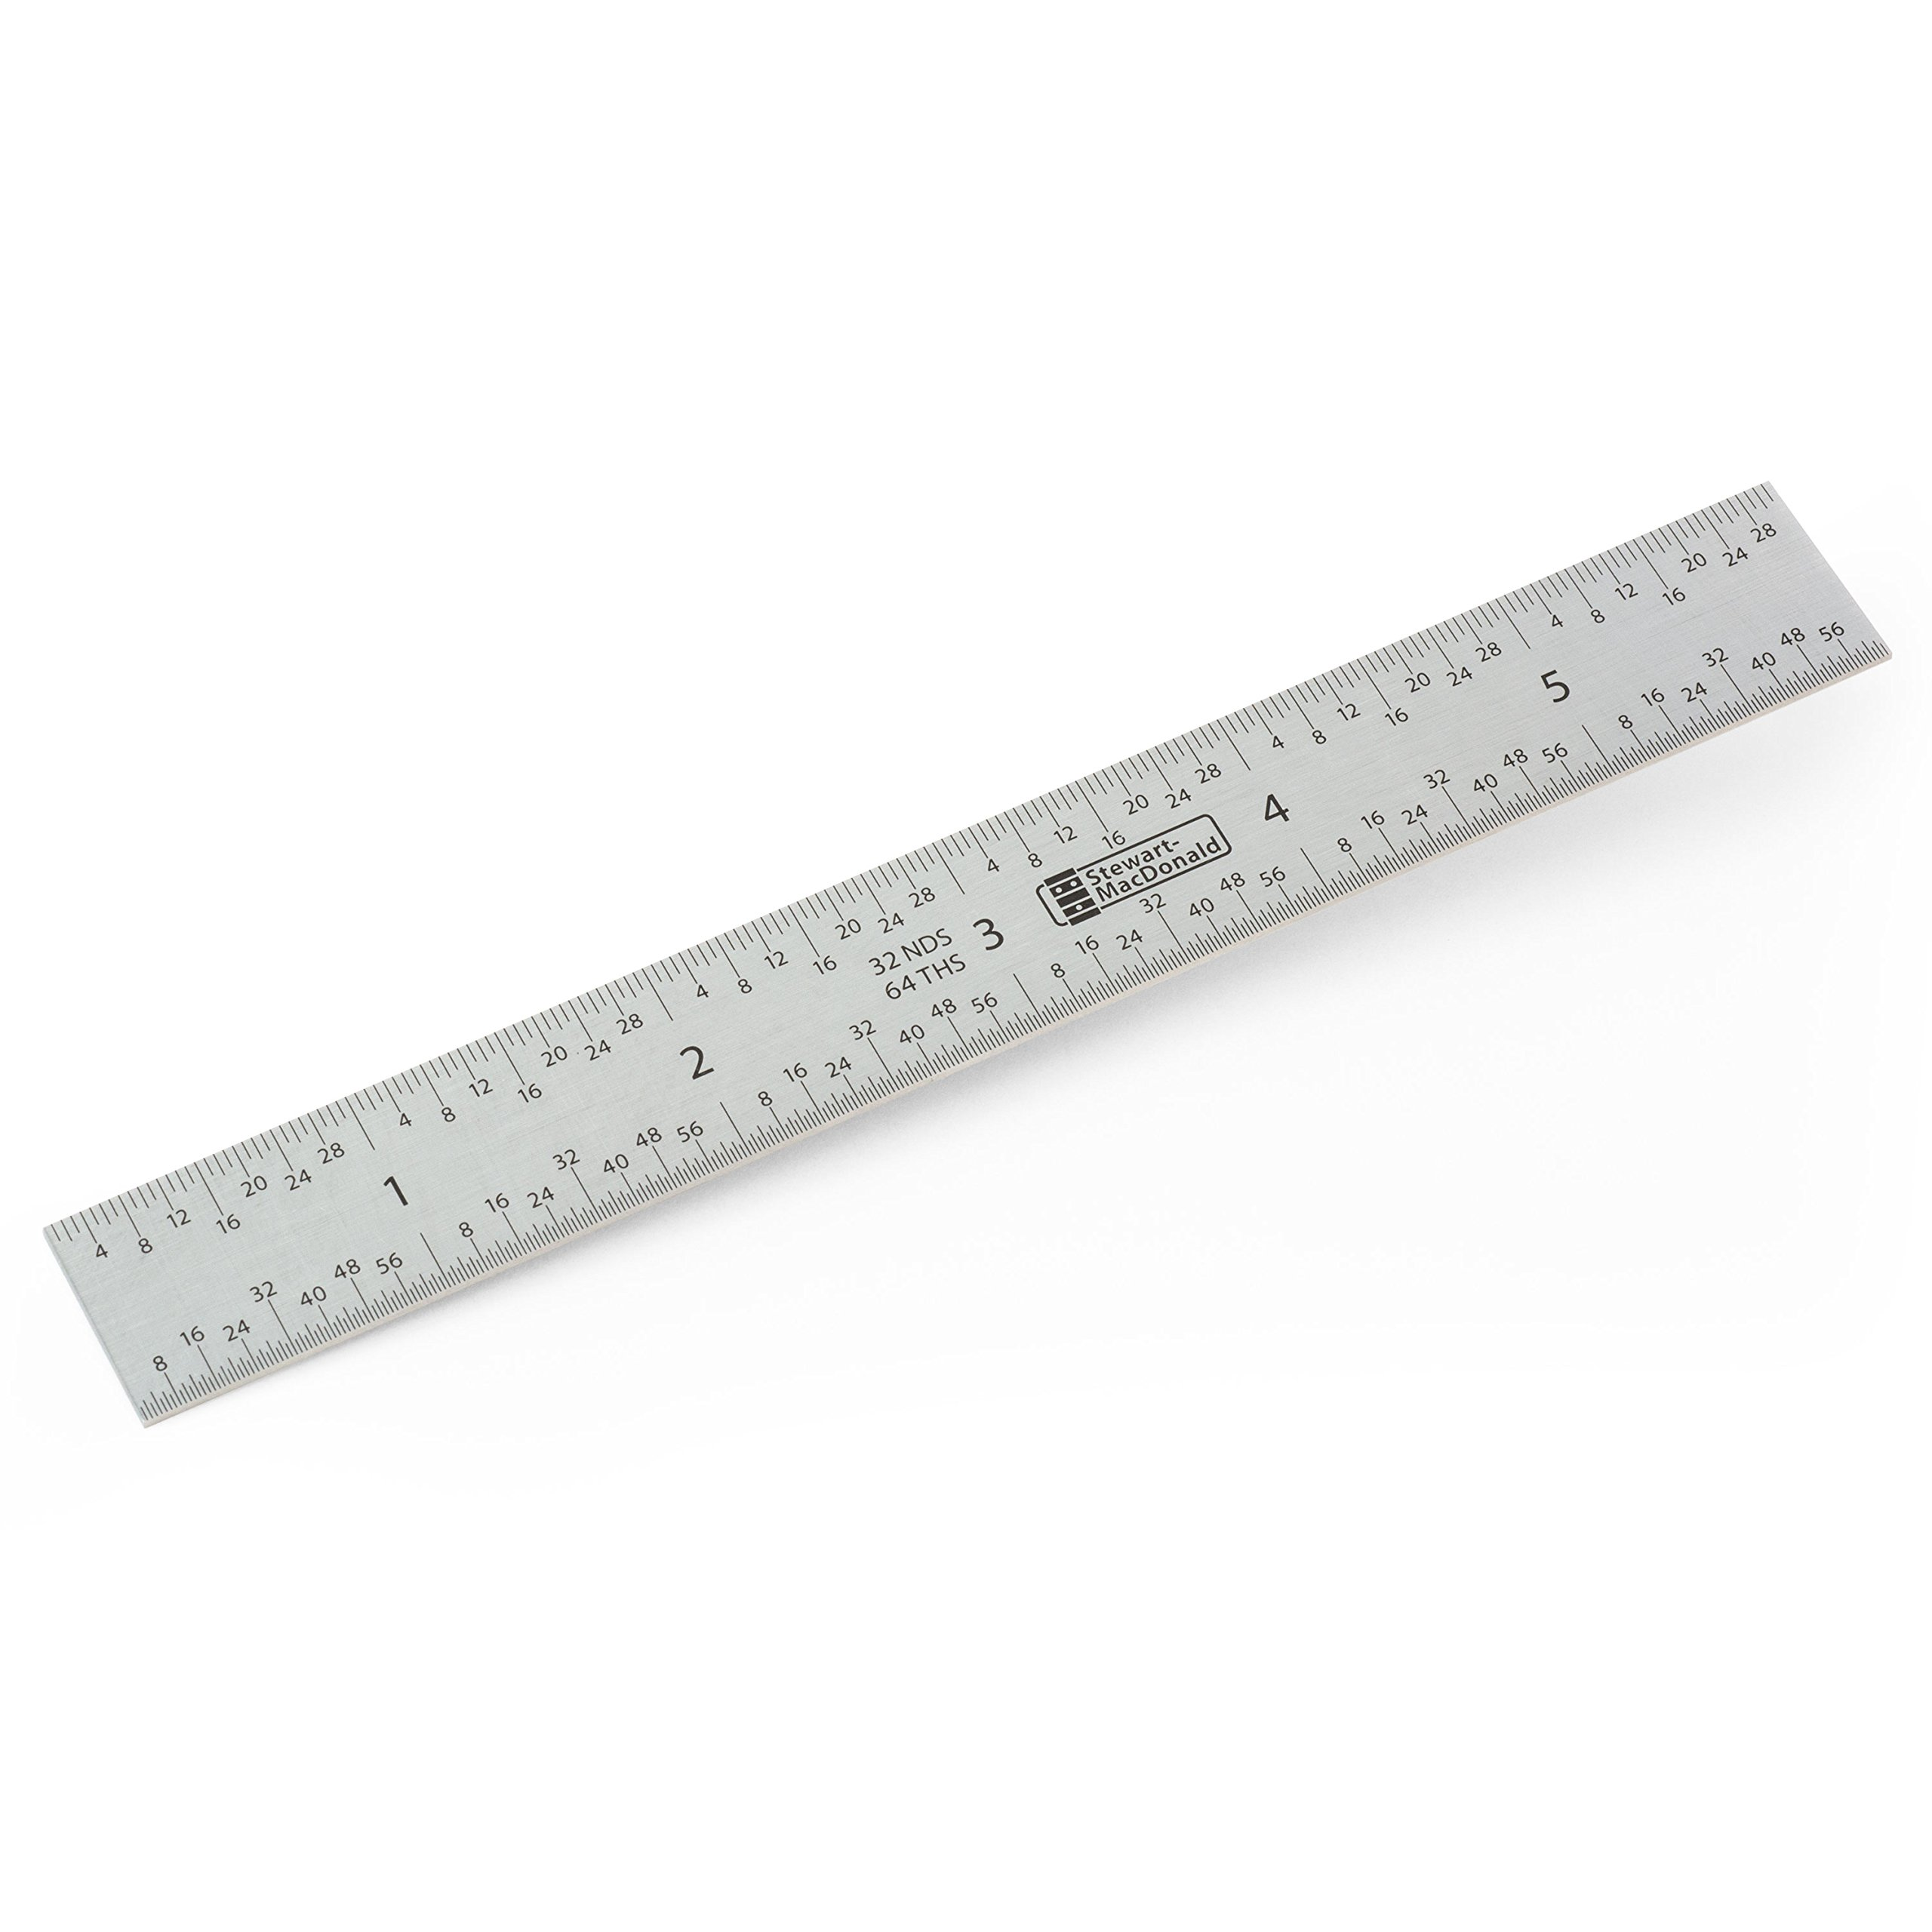 StewMac Shop Rule Precision Ruler, Measures in Inches